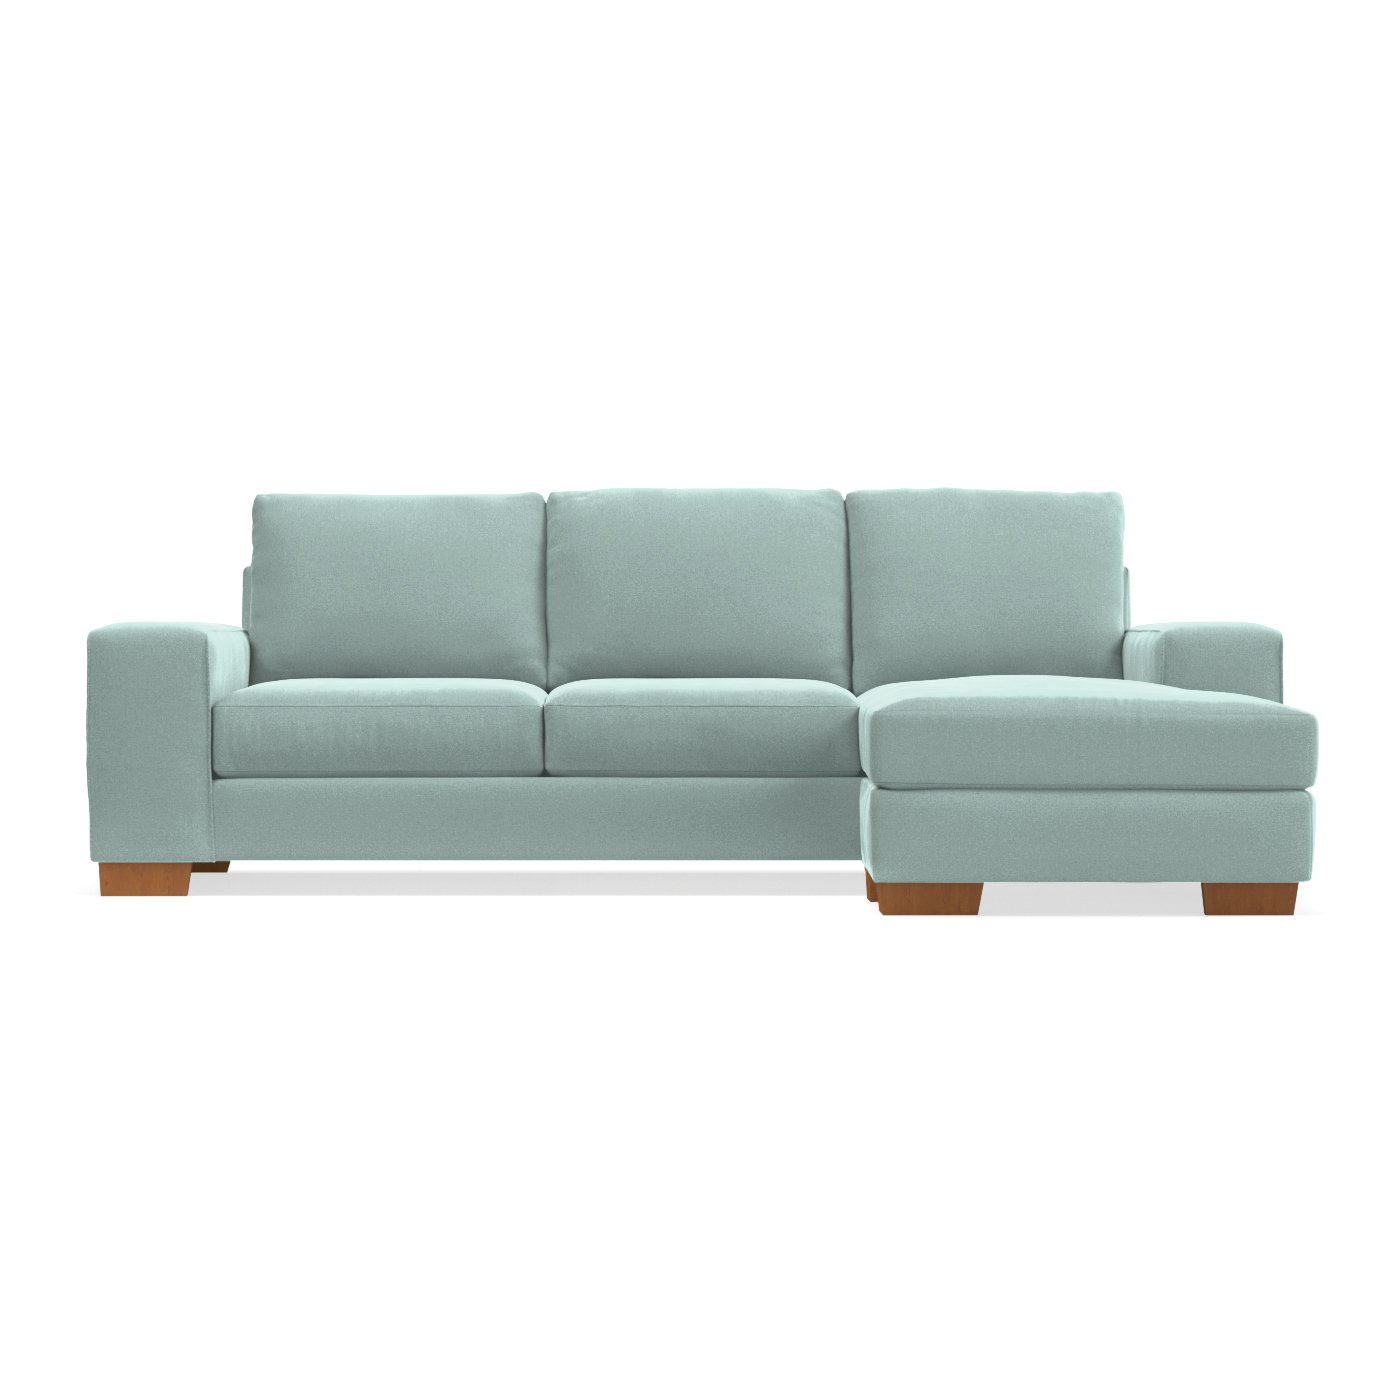 Melrose Reversible Chaise Sofa Choice of Fabrics Apt2B